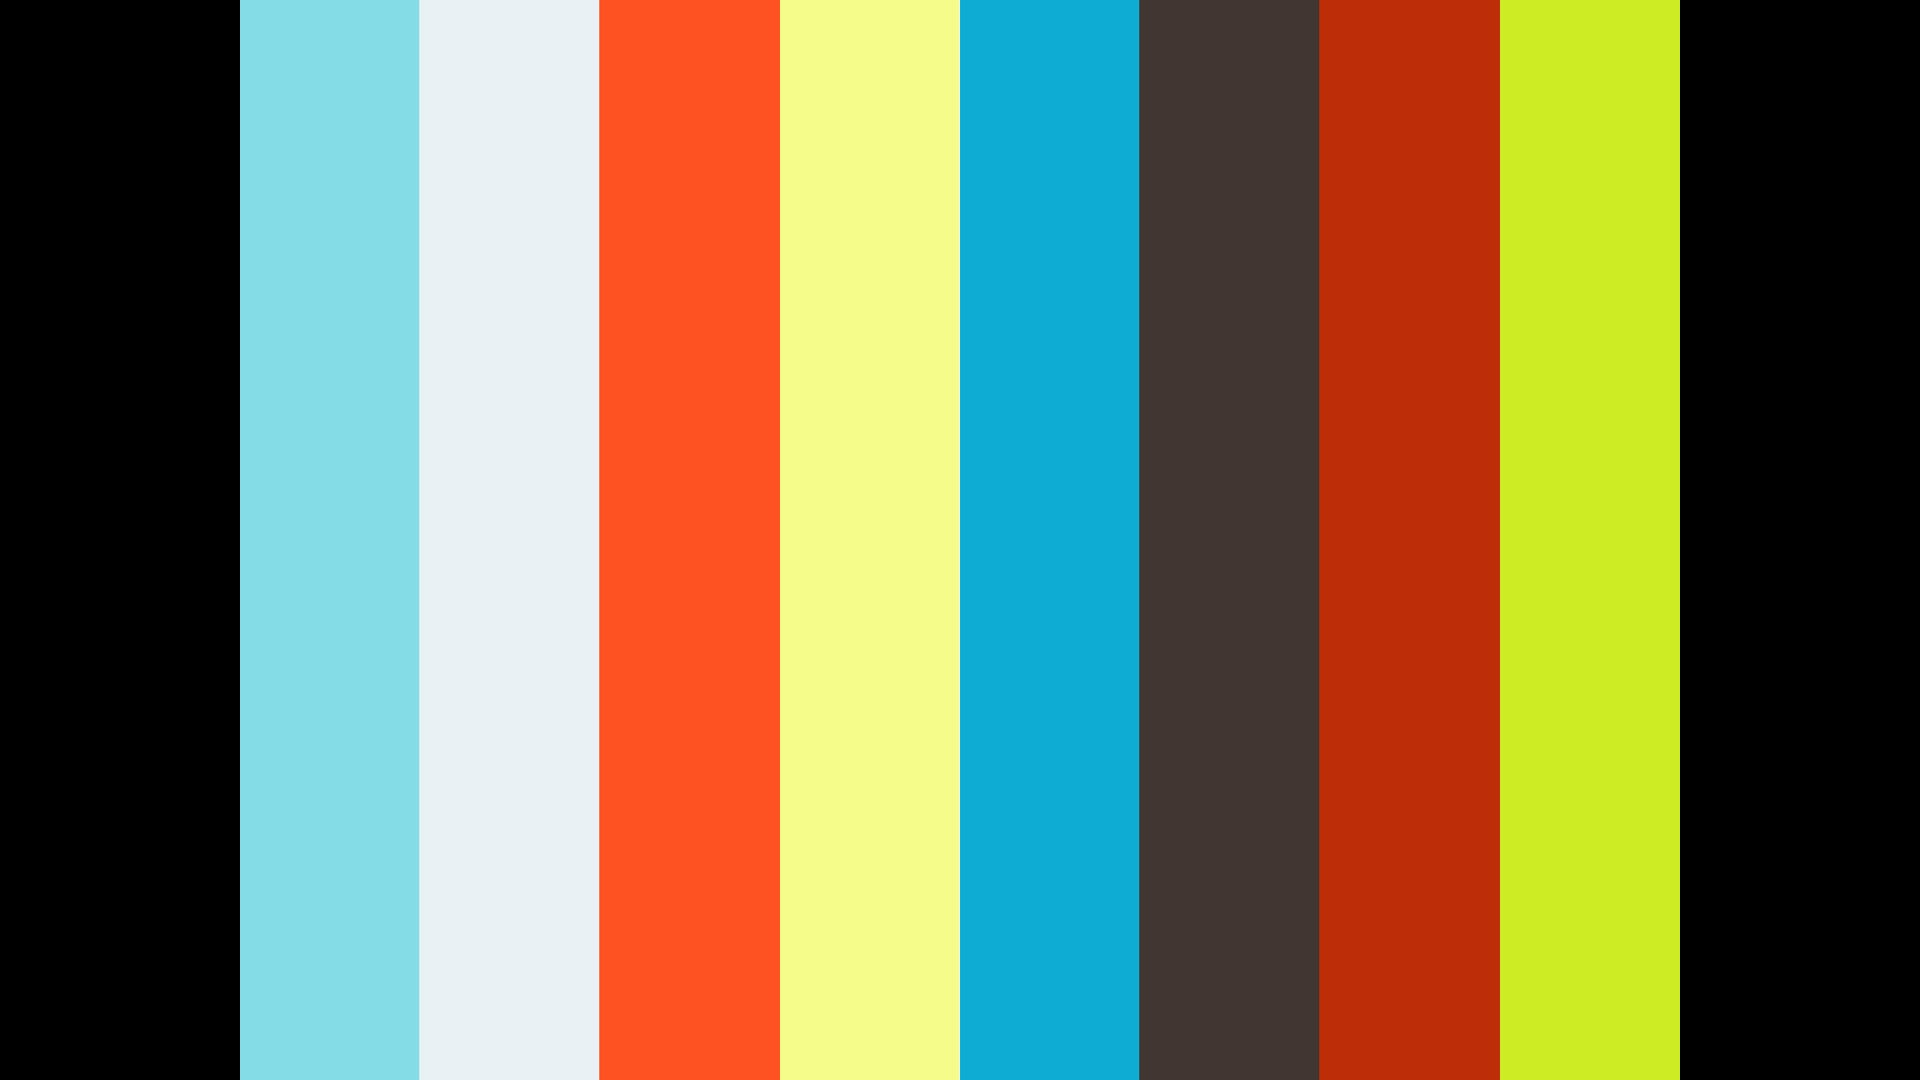 Ethiopianism.tv - የአርበኛ-ፋኖ ማዕከላዊ ውይም  ዜጋዊ ሕዝባዊ ትግል  Arbegna Fano Centralized or People's Horizontal Movement 10 April 2020 #10